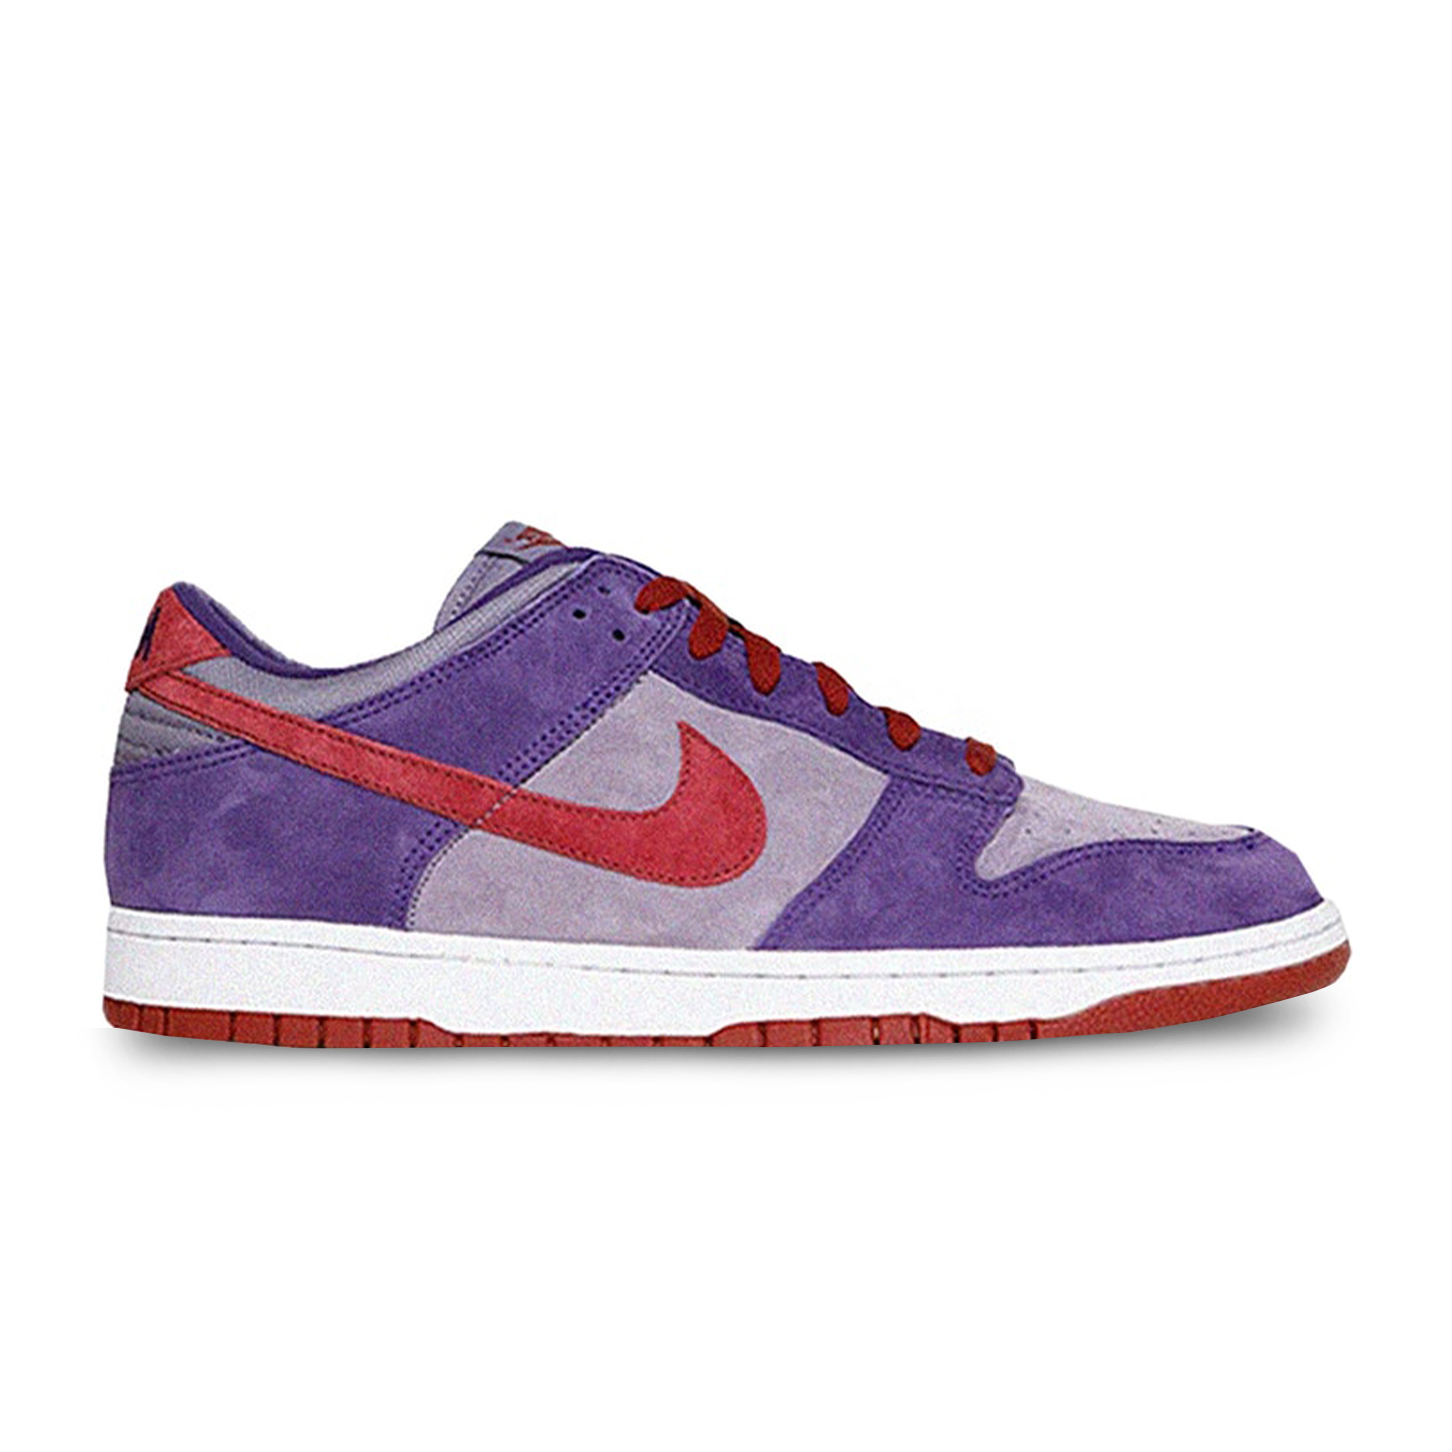 Dunk Low Plum (2020)